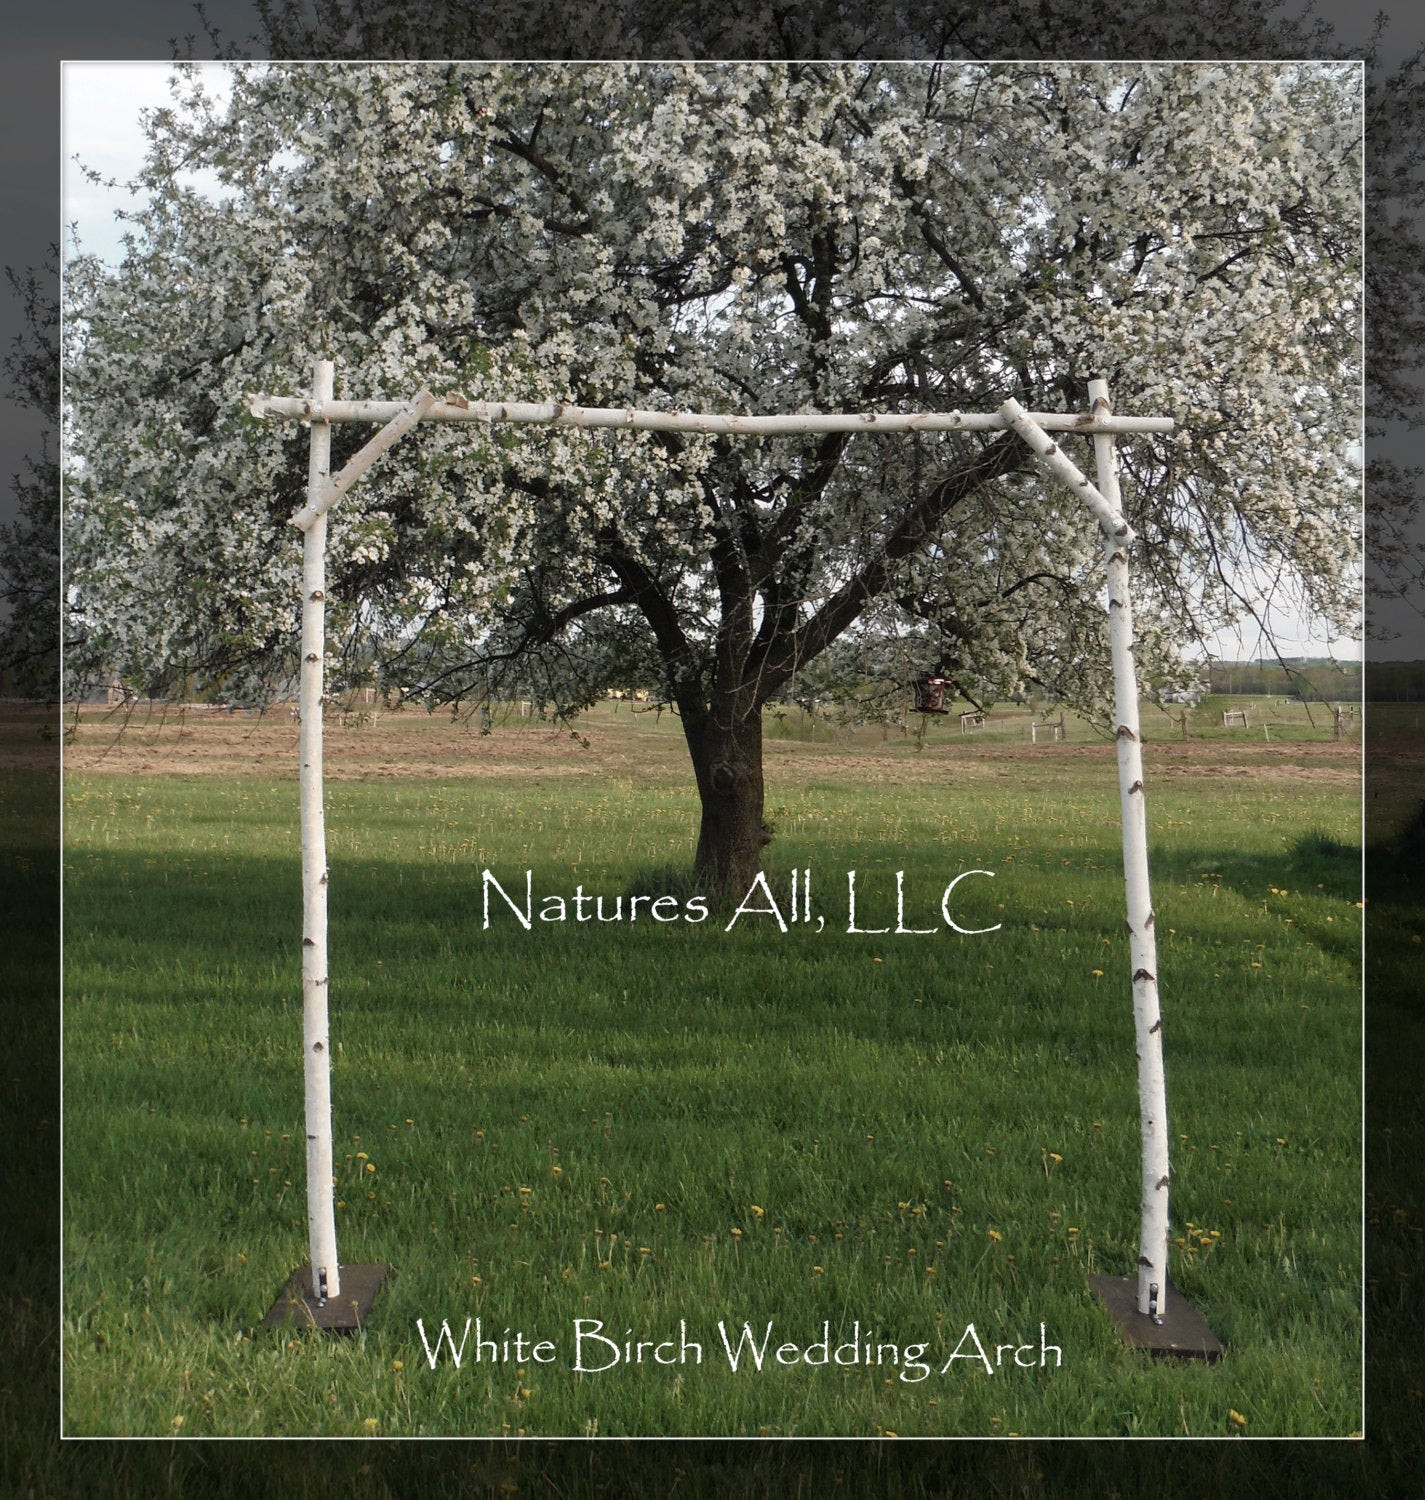 Best ideas about DIY Wedding Arch Frame . Save or Pin White Birch Wedding Arch White Birch Arbor plete Kit For Now.